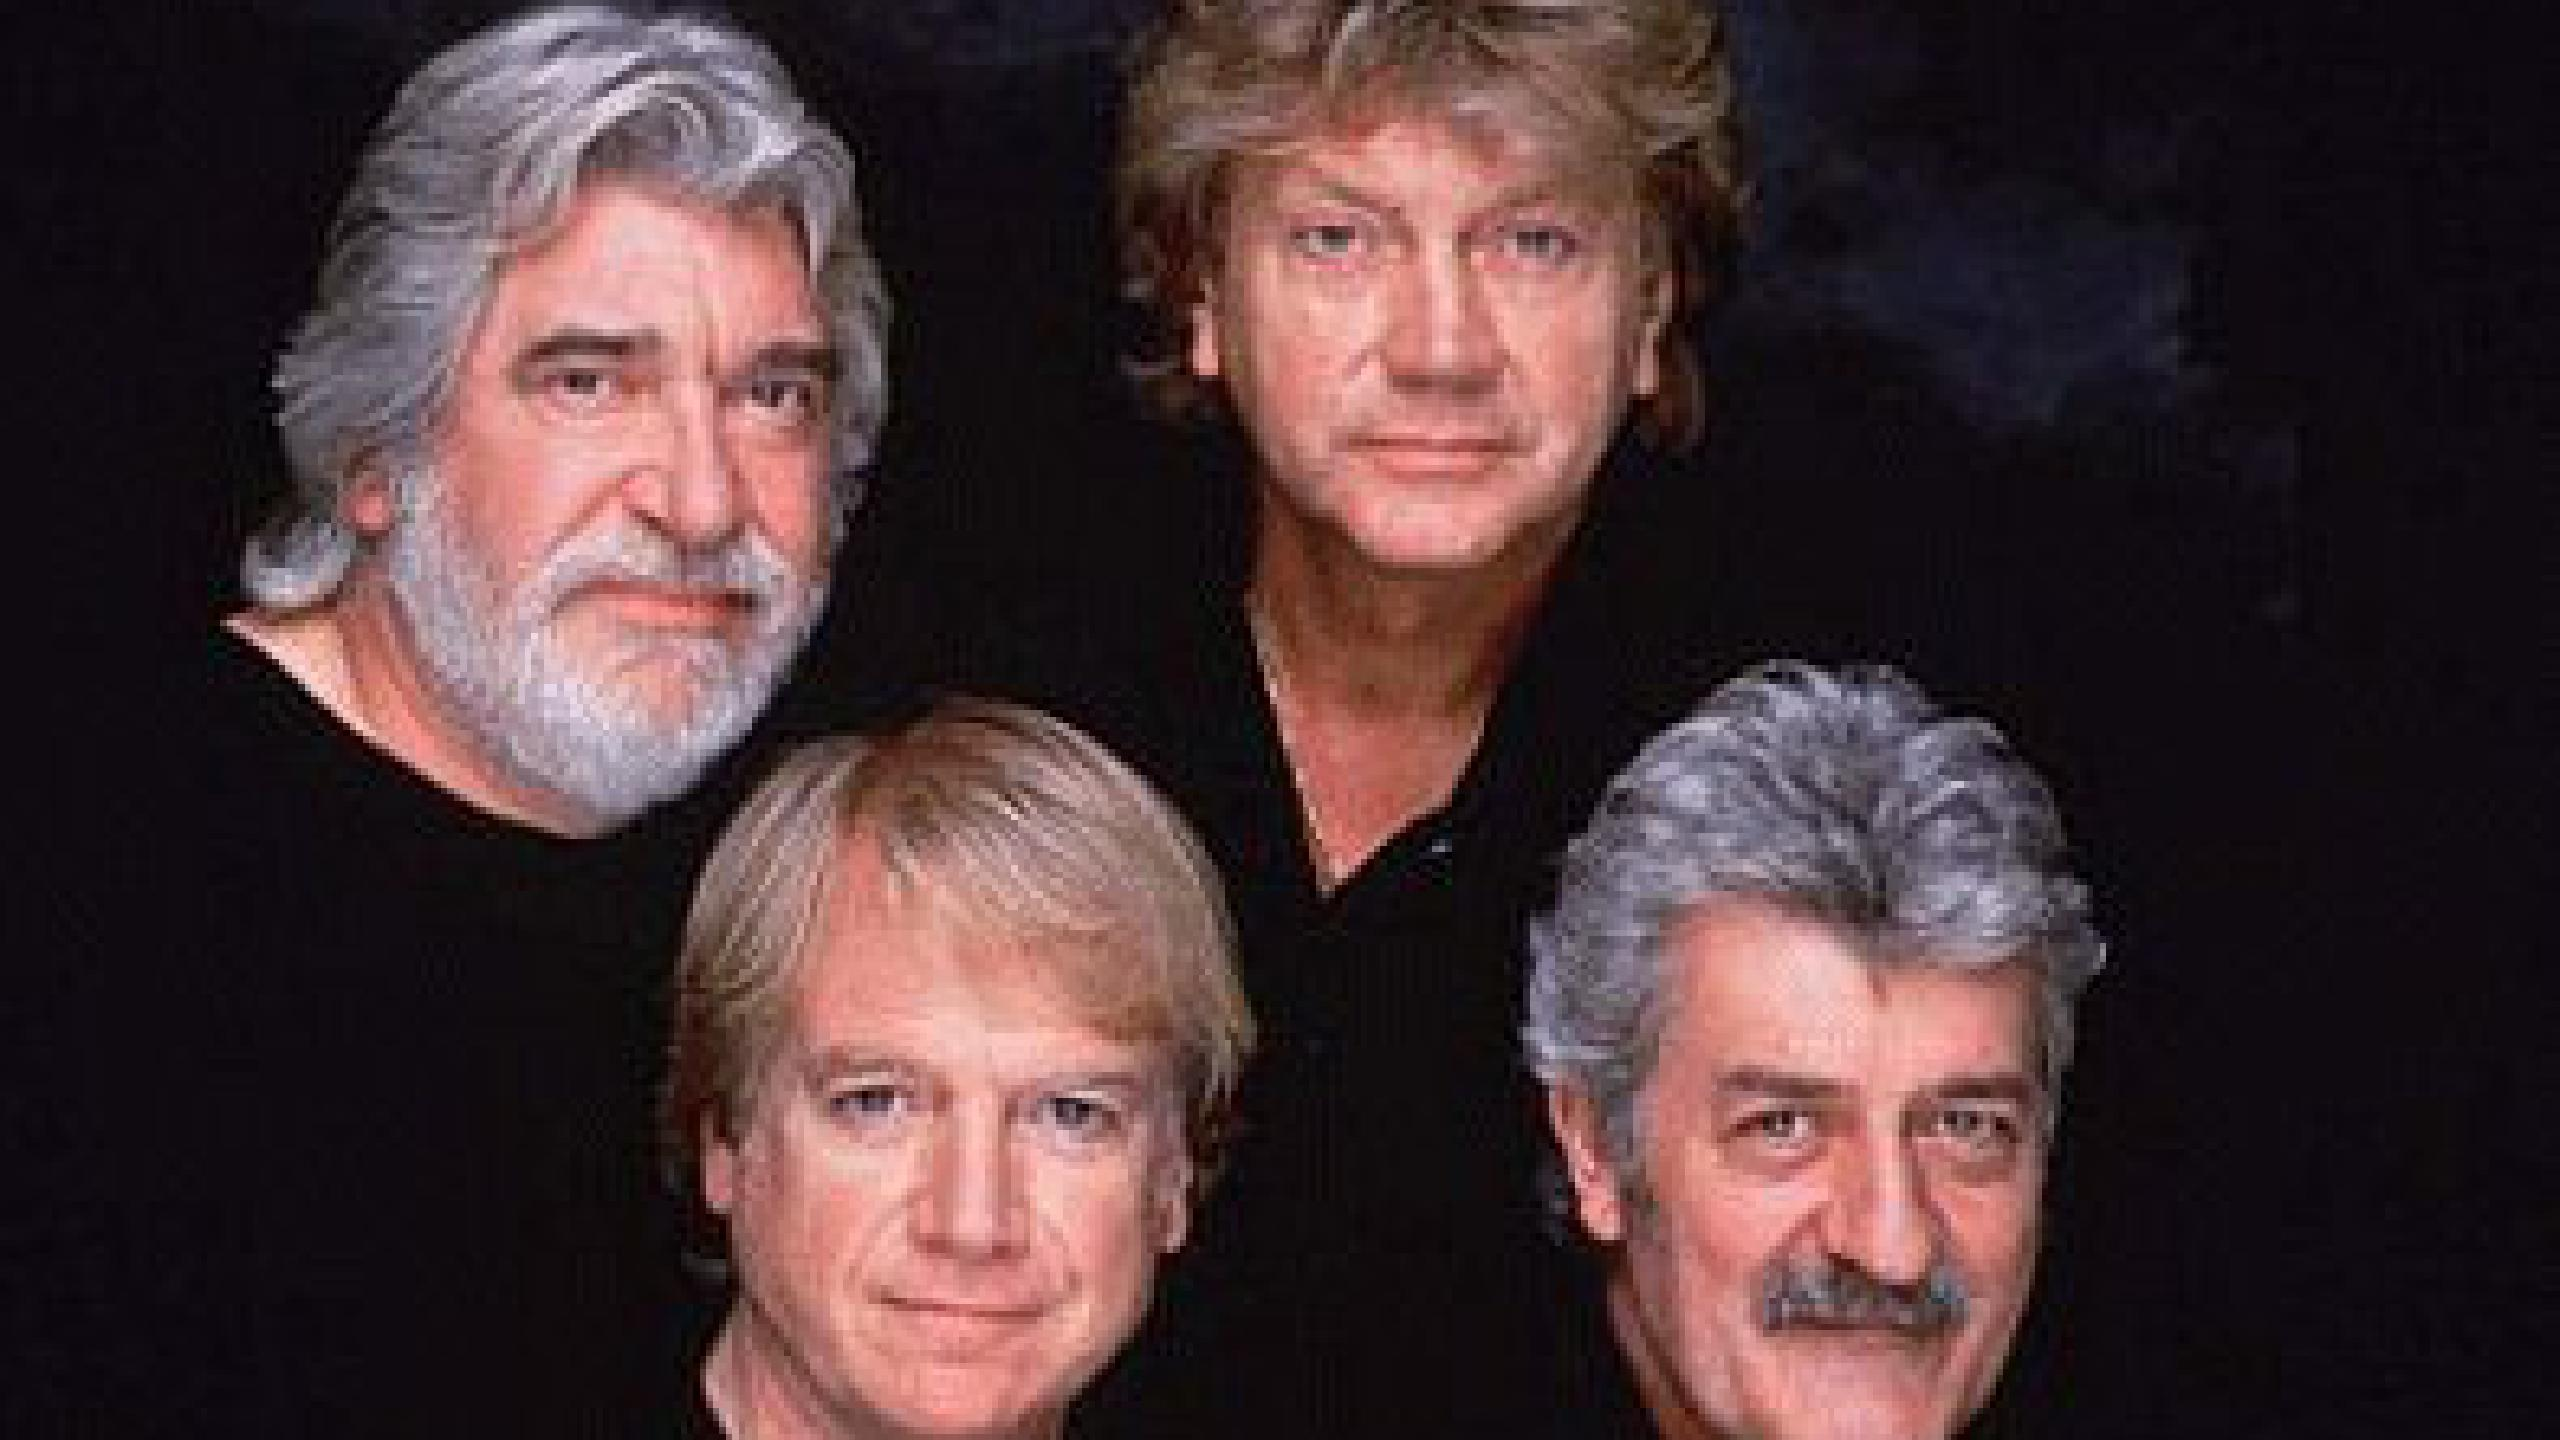 Moody Blues Tour 2020.The Moody Blues Tour Dates 2019 2020 The Moody Blues